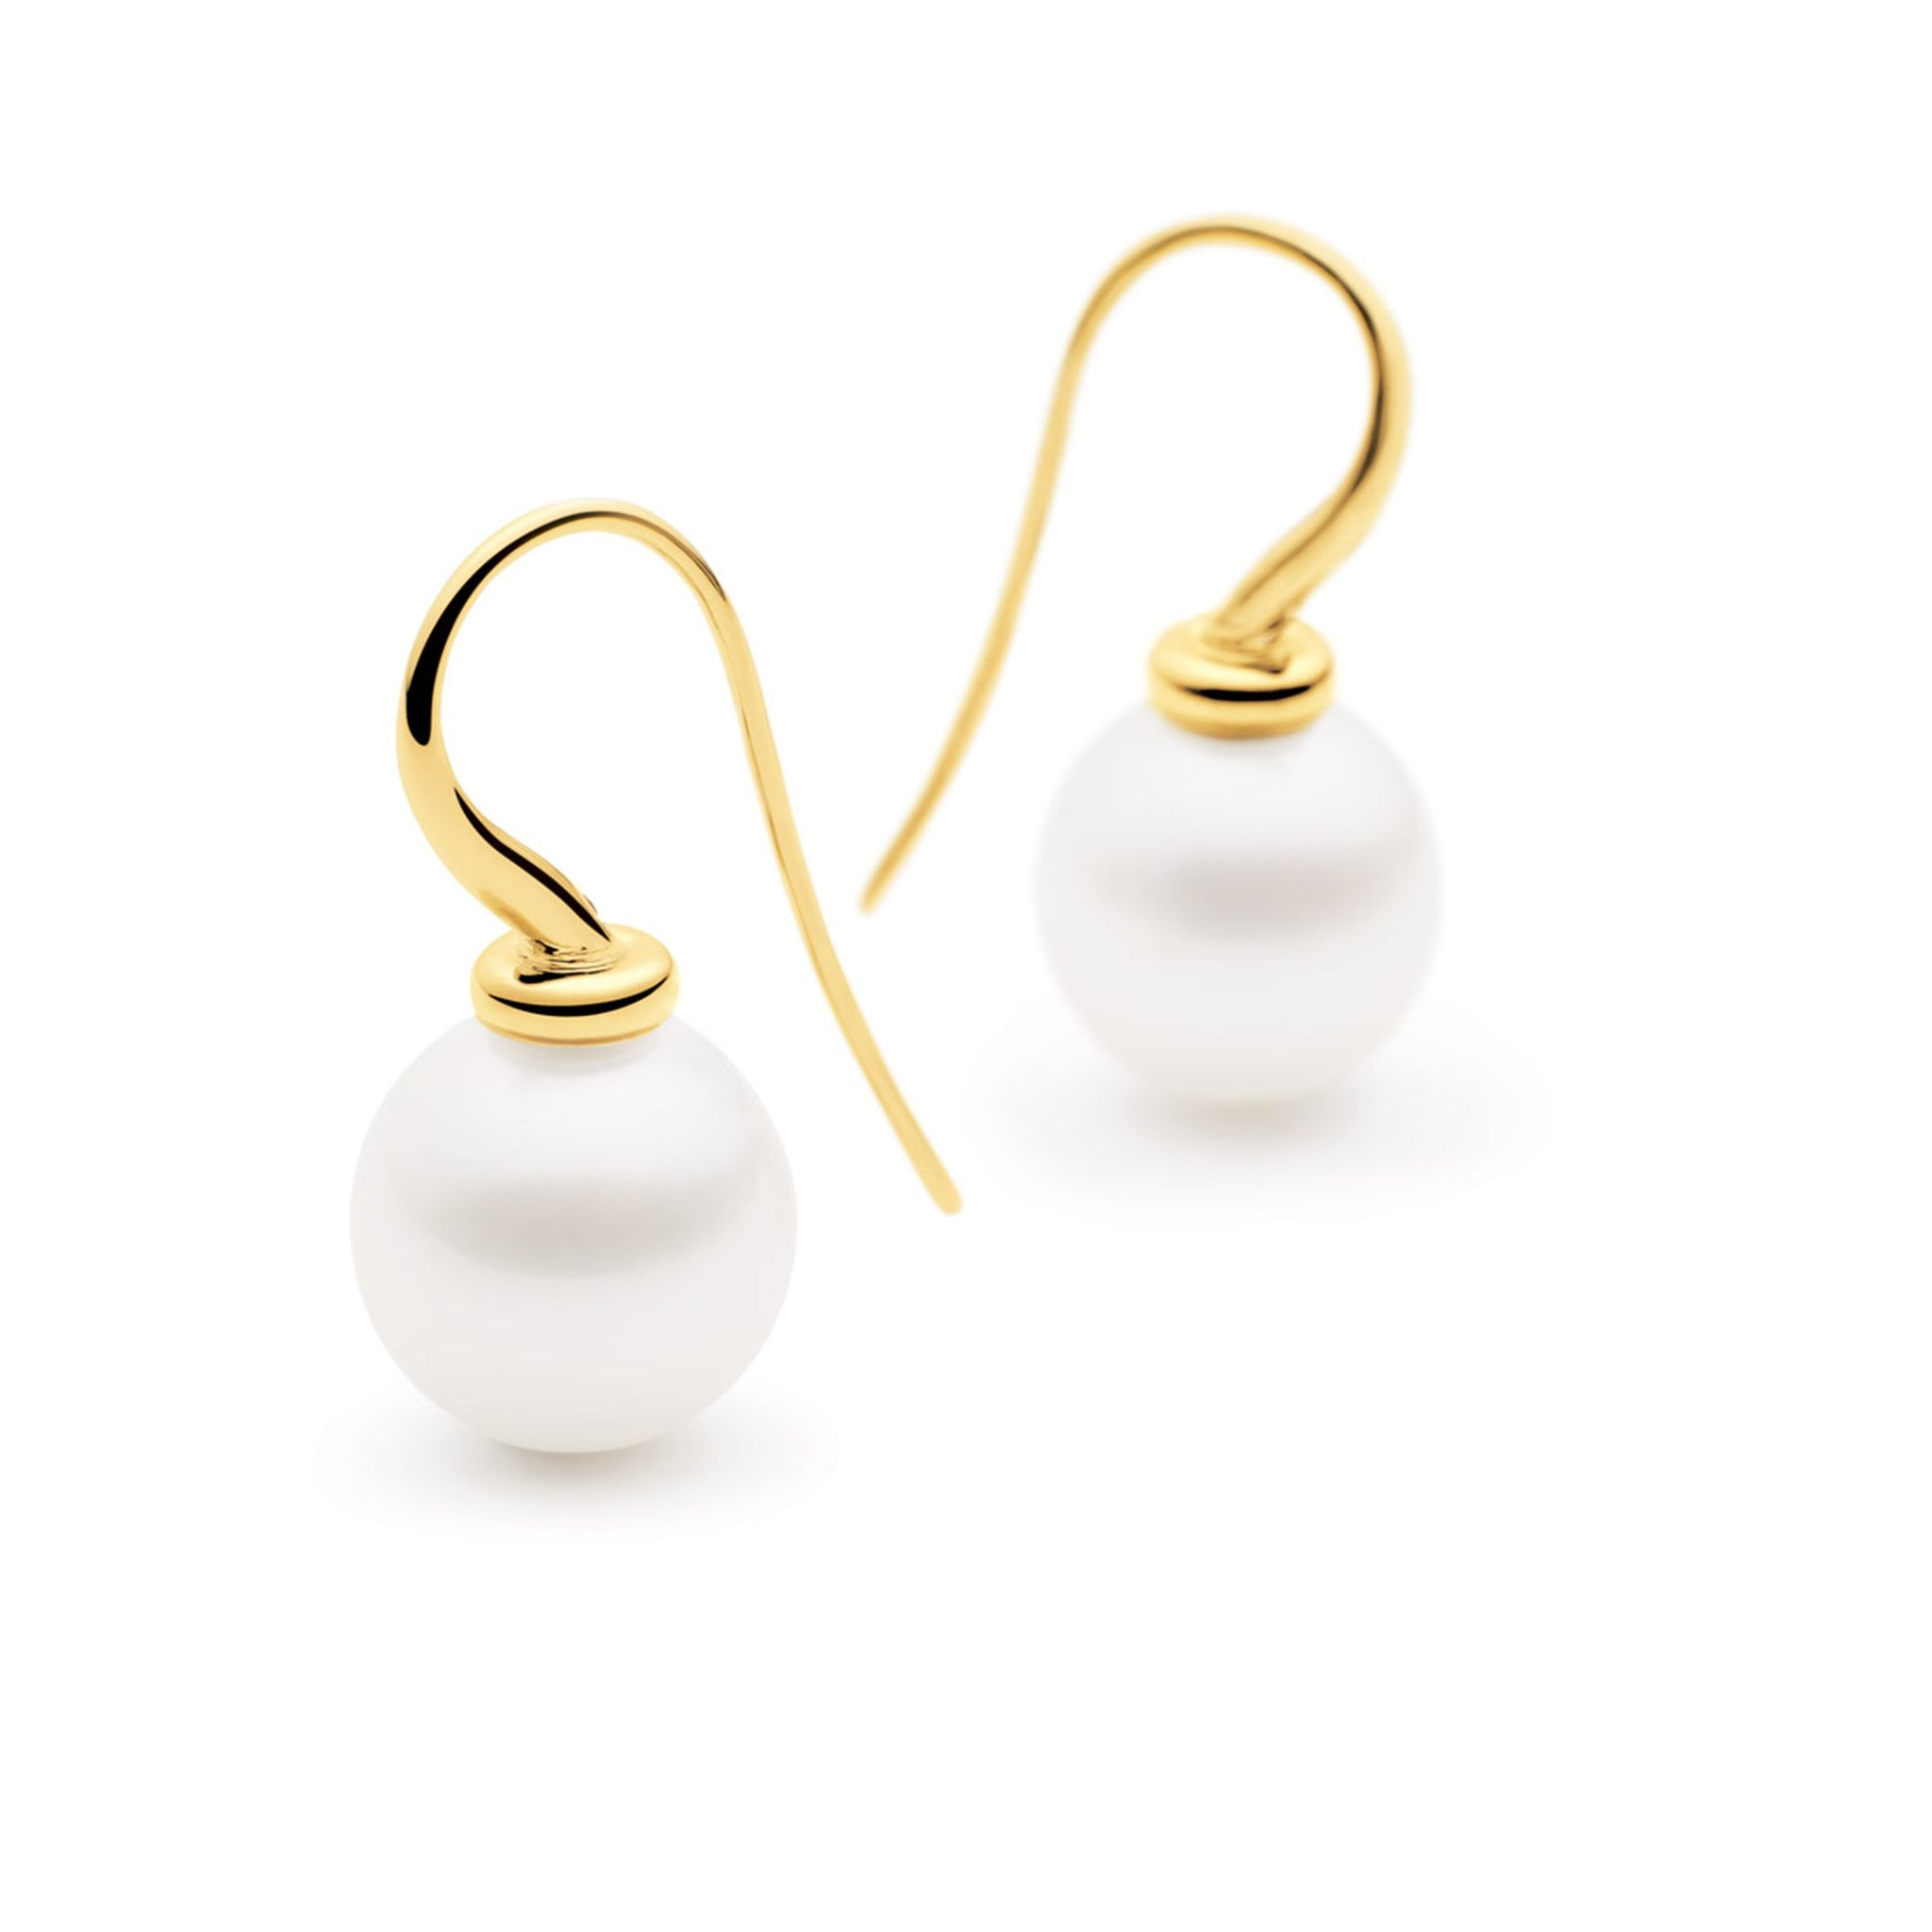 Kailis Jewellery - Shimmer Tranquility French Hook Earrings - Yellow Gold